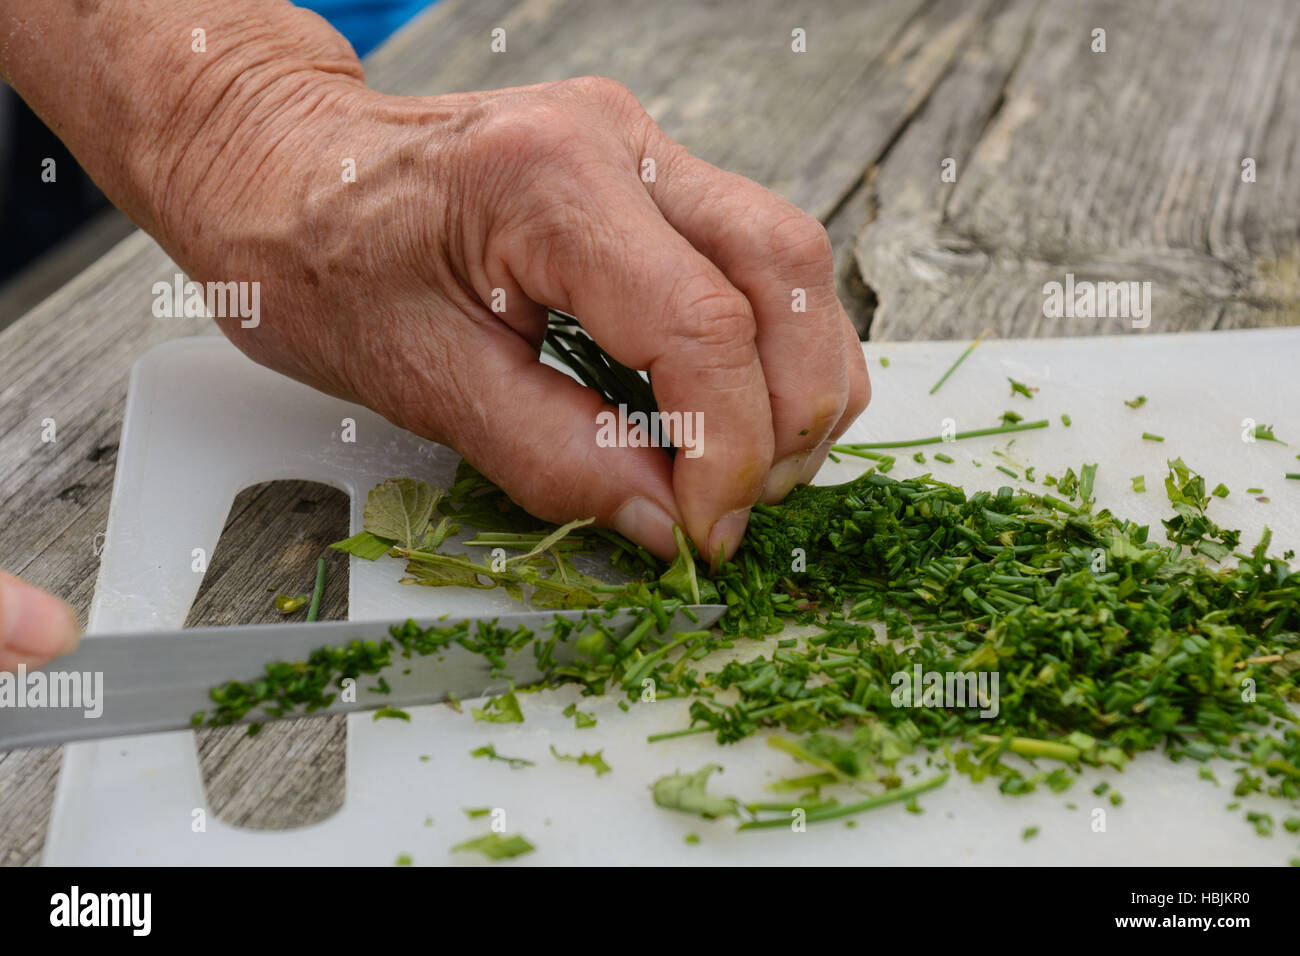 Cut chives on plate by hand with a knife Stock Photo